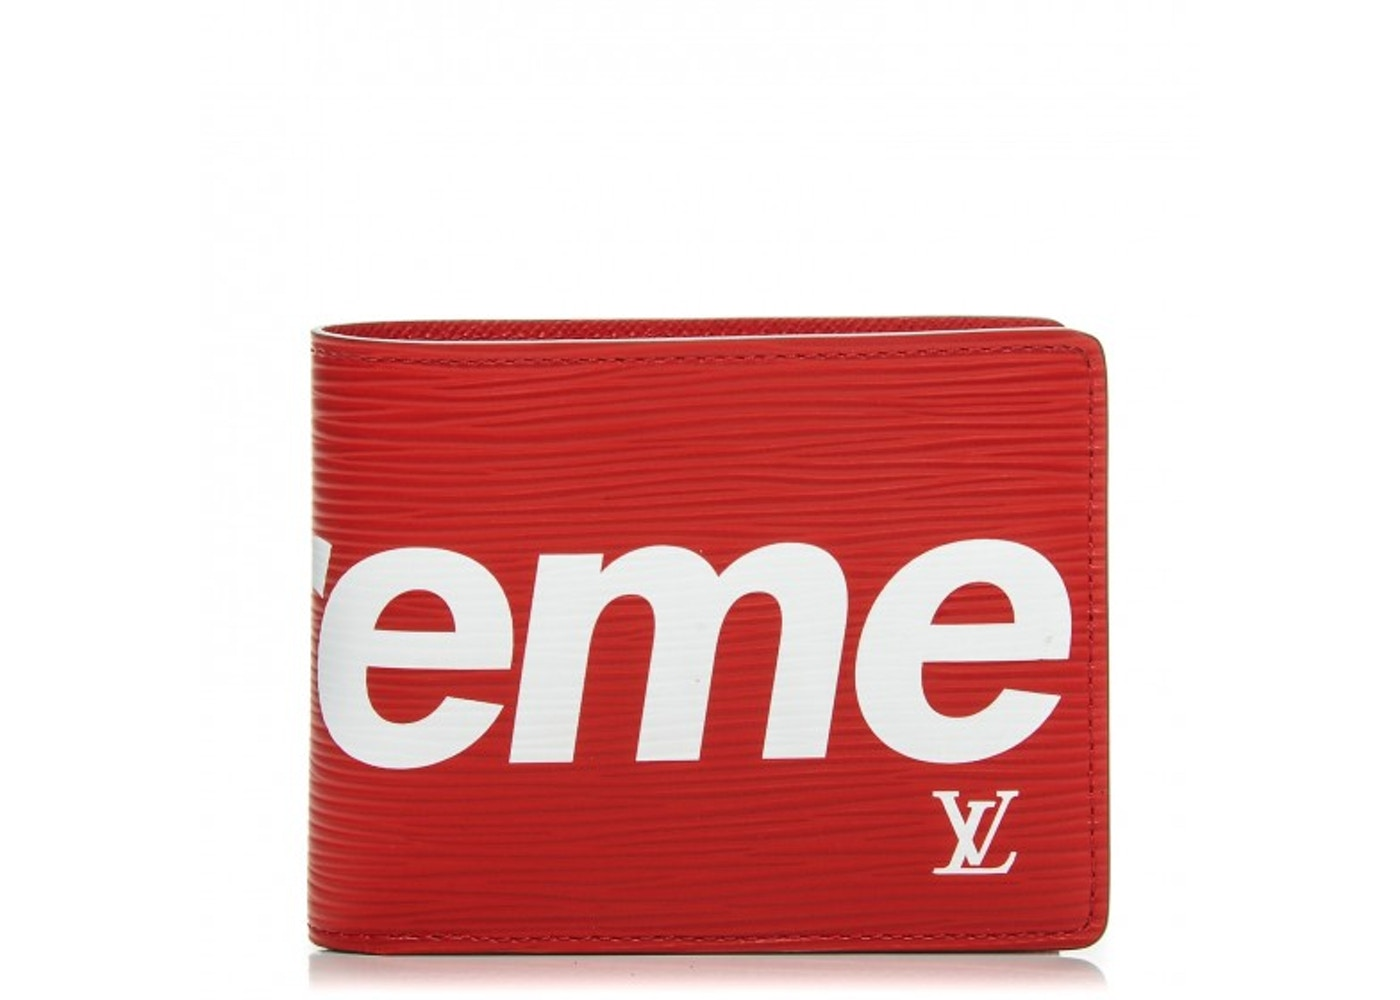 4ae6ae36db6 Louis Vuitton x Supreme Slender Wallet Epi Red